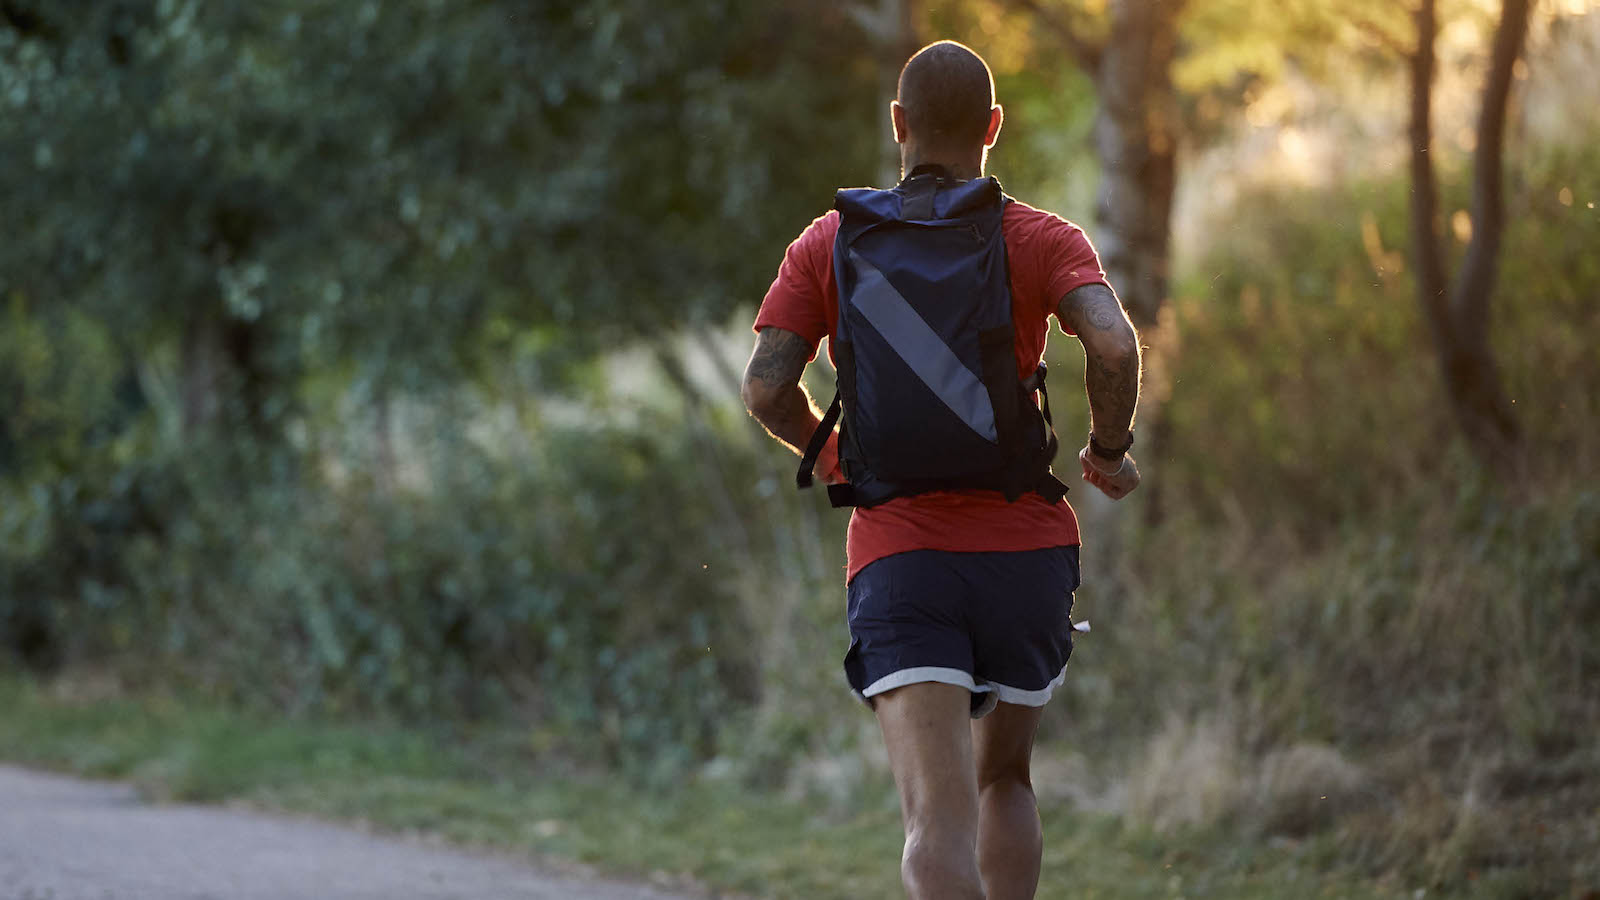 MW x Tracksmith Run Commute Pack breathable backpack is wearable even while running